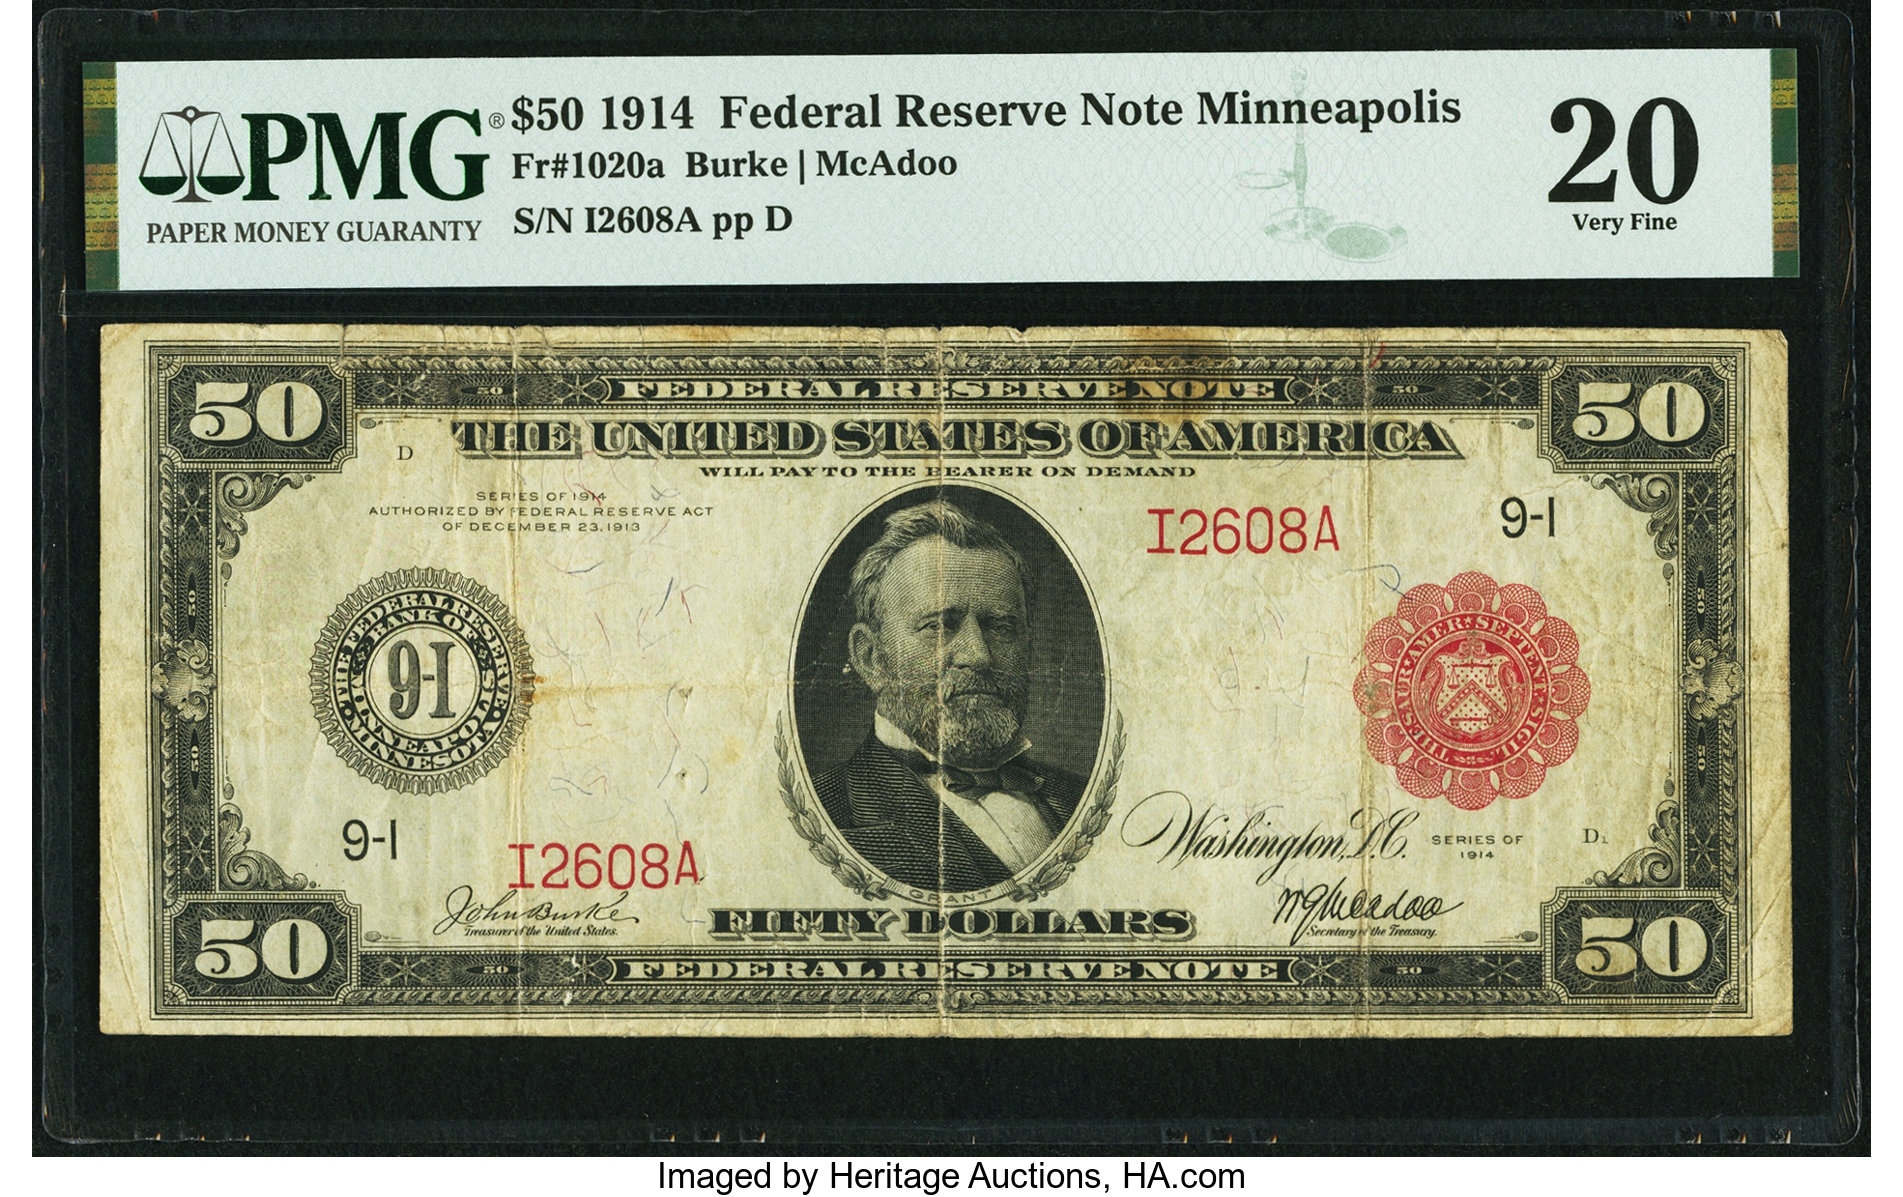 sample image for Fr.1020A $50 Minneapolis RS